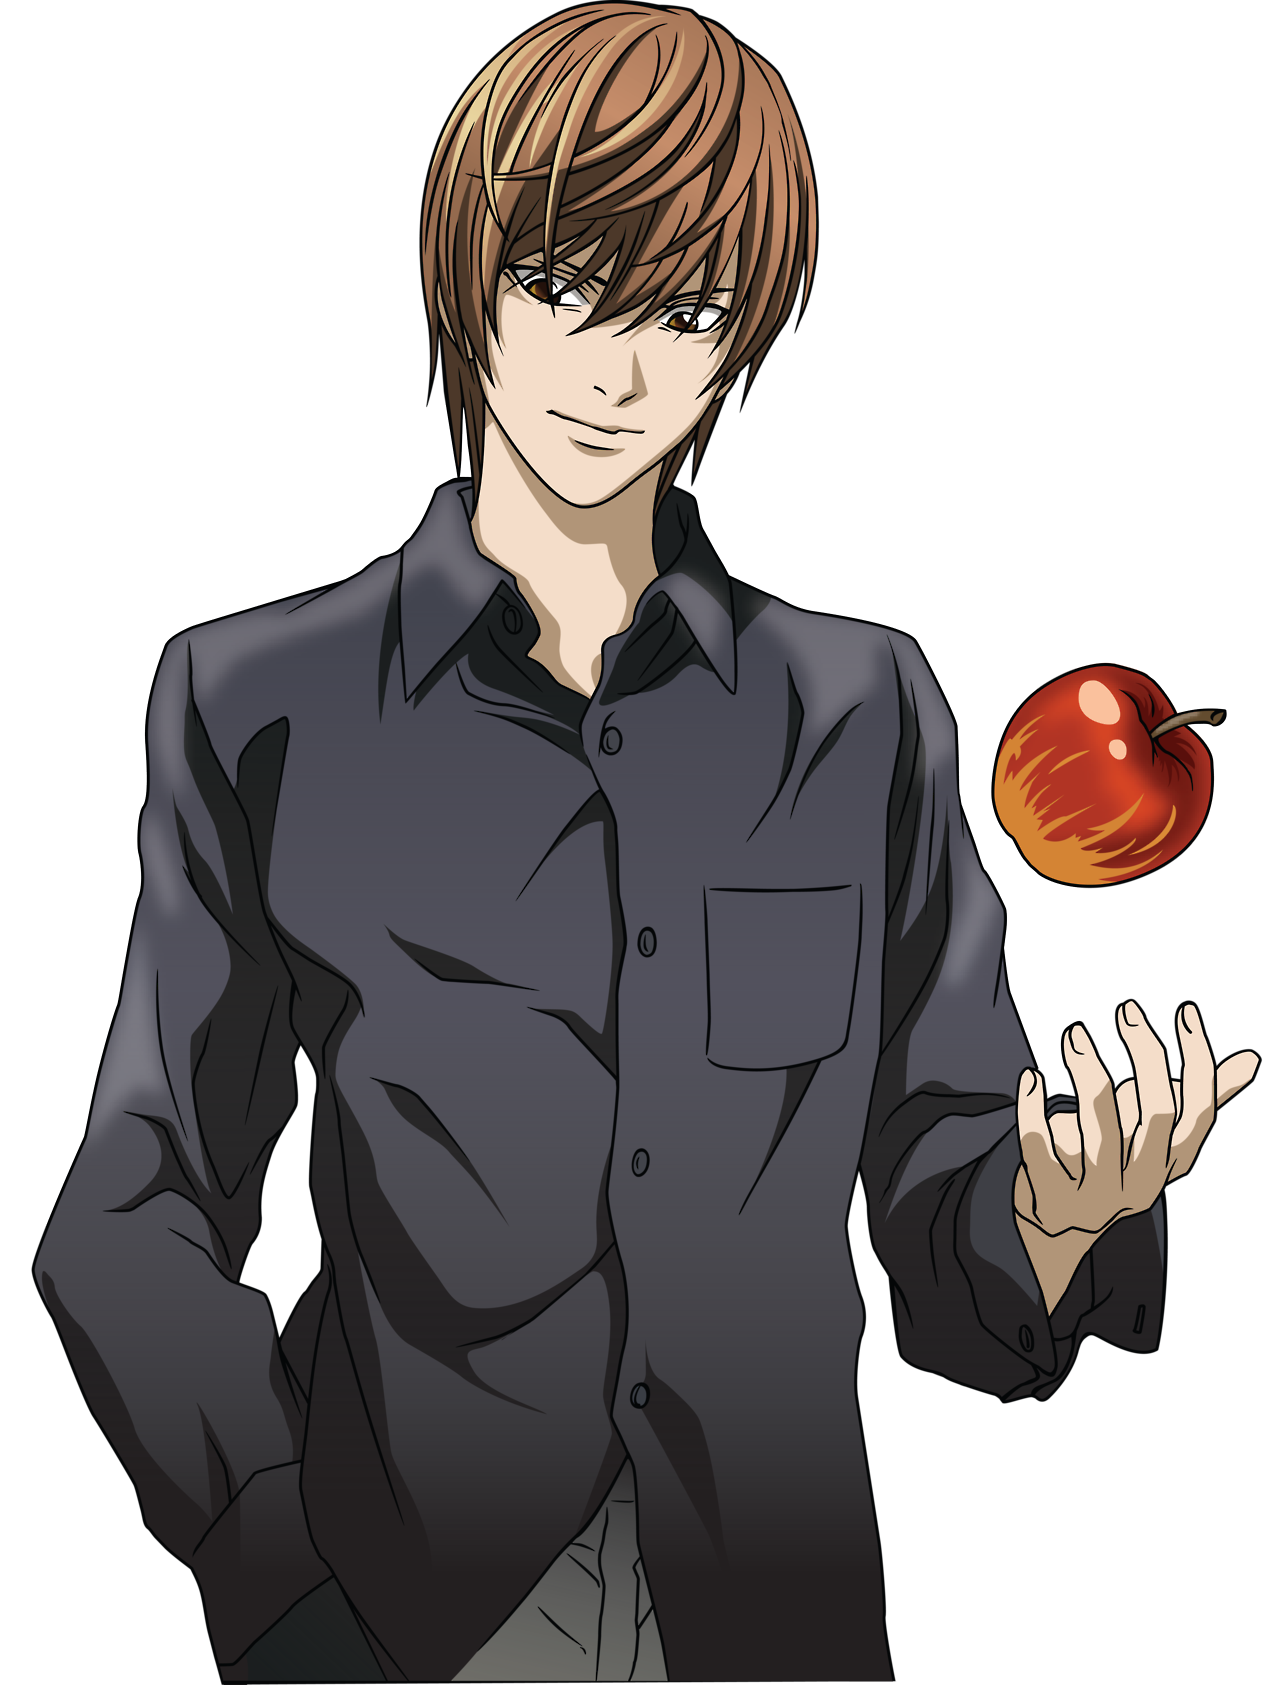 Pin by Armand Vorster on Anime Death note light, Death